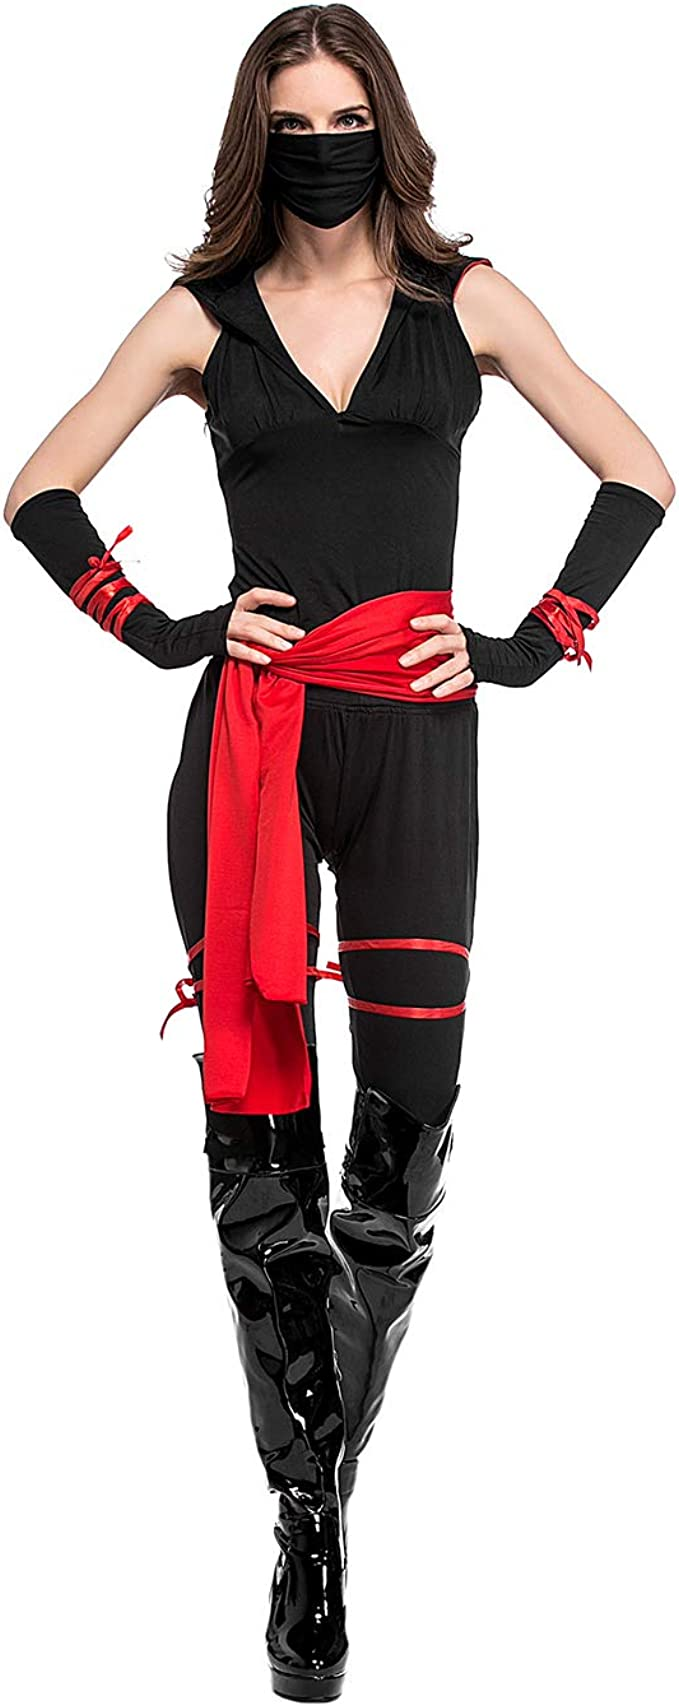 HDE Deadly Ninja Costume 8 Piece Womens Halloween Costume Adult Sized Trick or Treat Ninjutsu Outfit